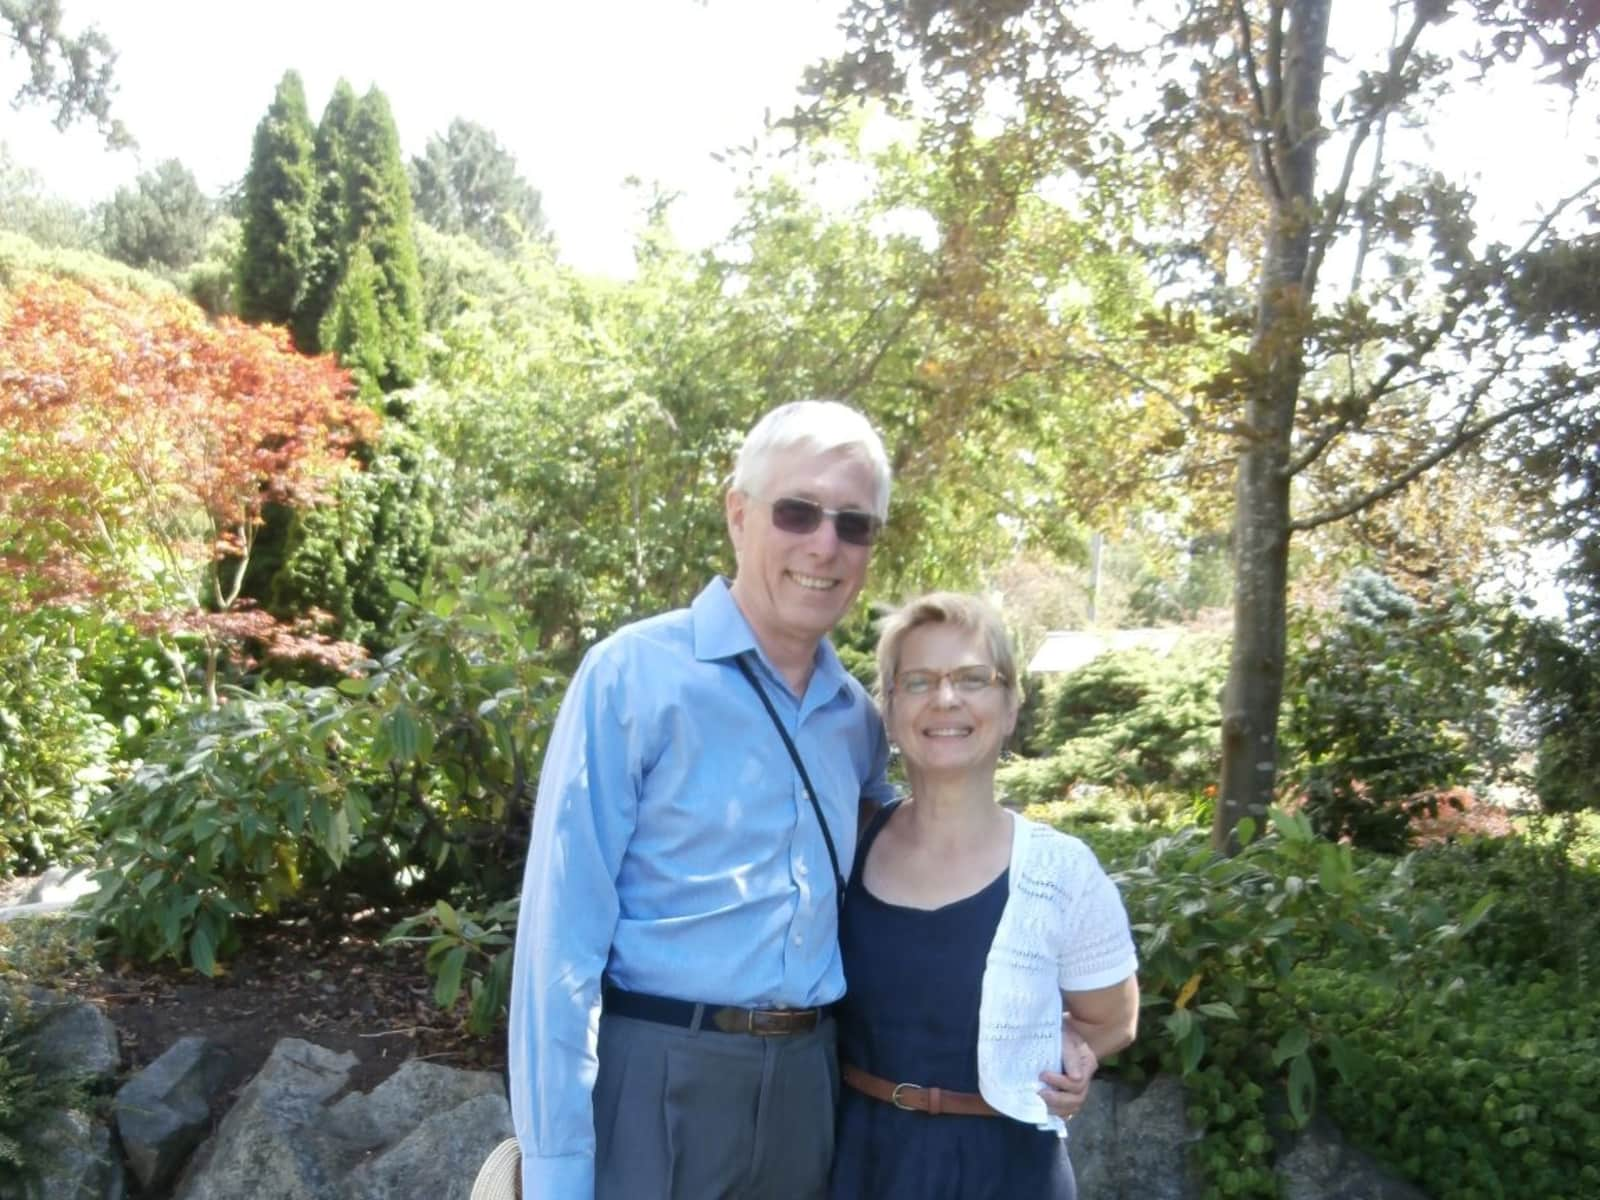 John & Constance from Nanaimo, British Columbia, Canada